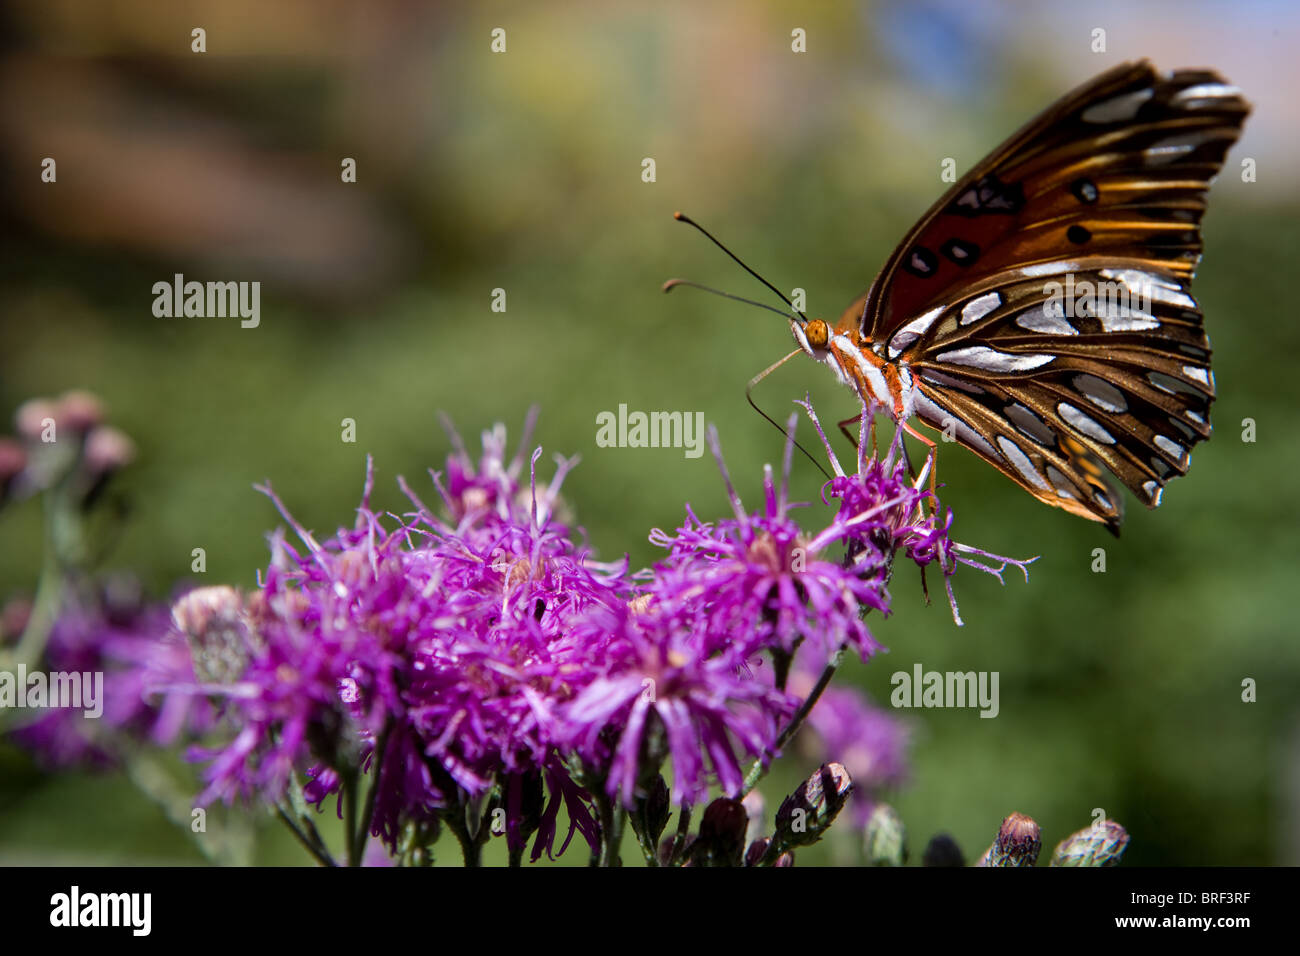 Painted Lady butterfly landing on a purple flower, drinking using its proboscis - Stock Image